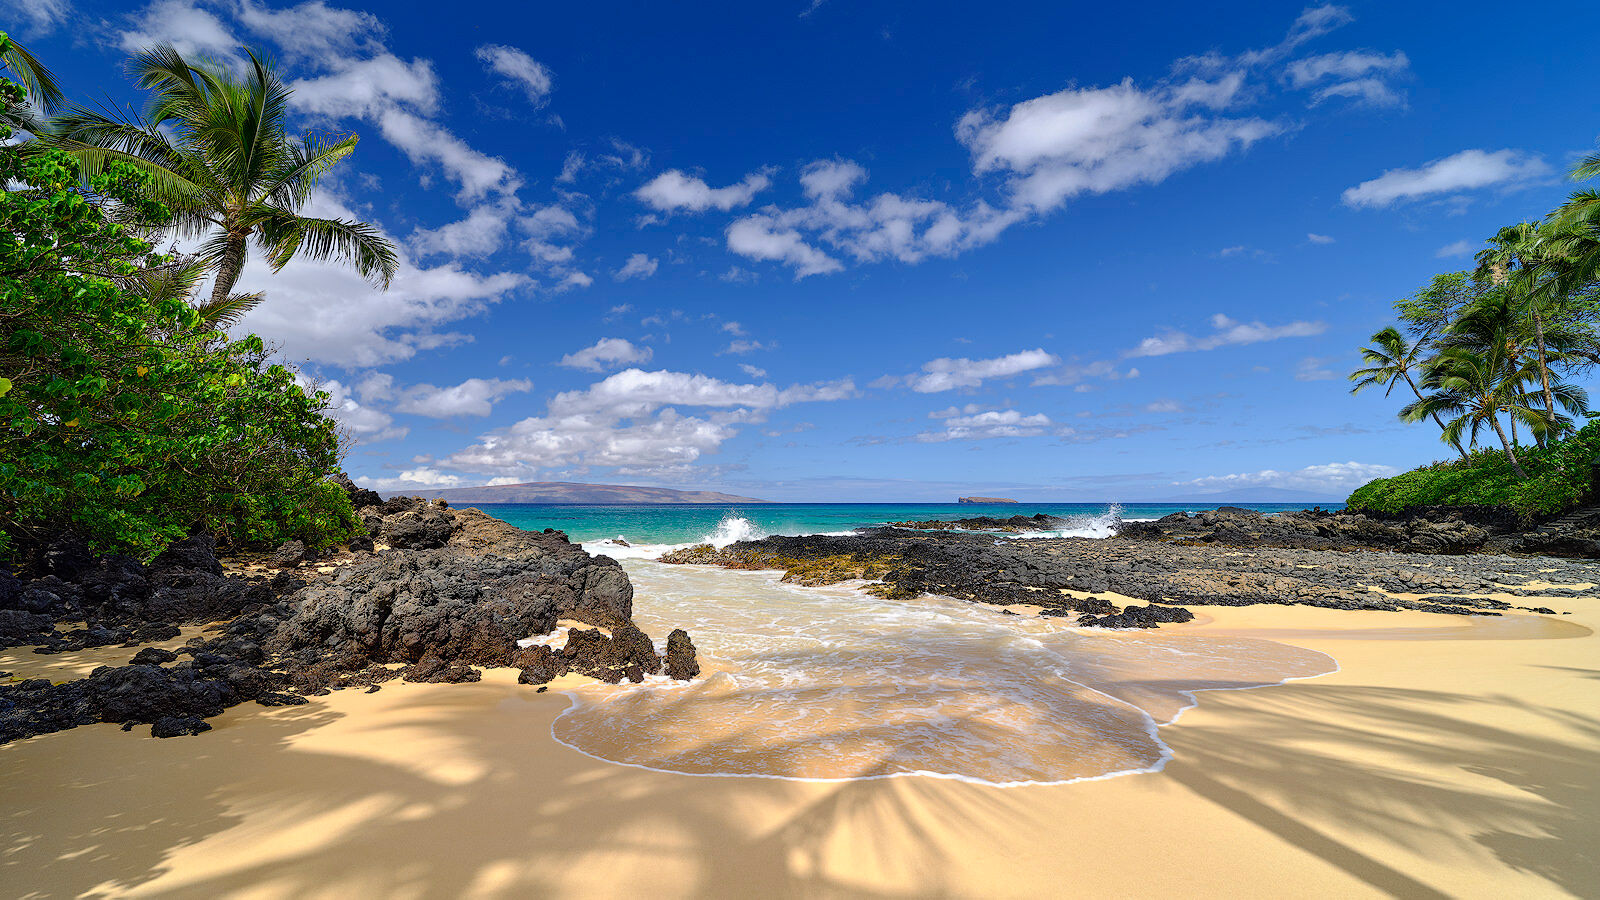 panoramic view of Secret Beach on the island of Maui with the shadows from the palm trees in the foreground as a wave comes in